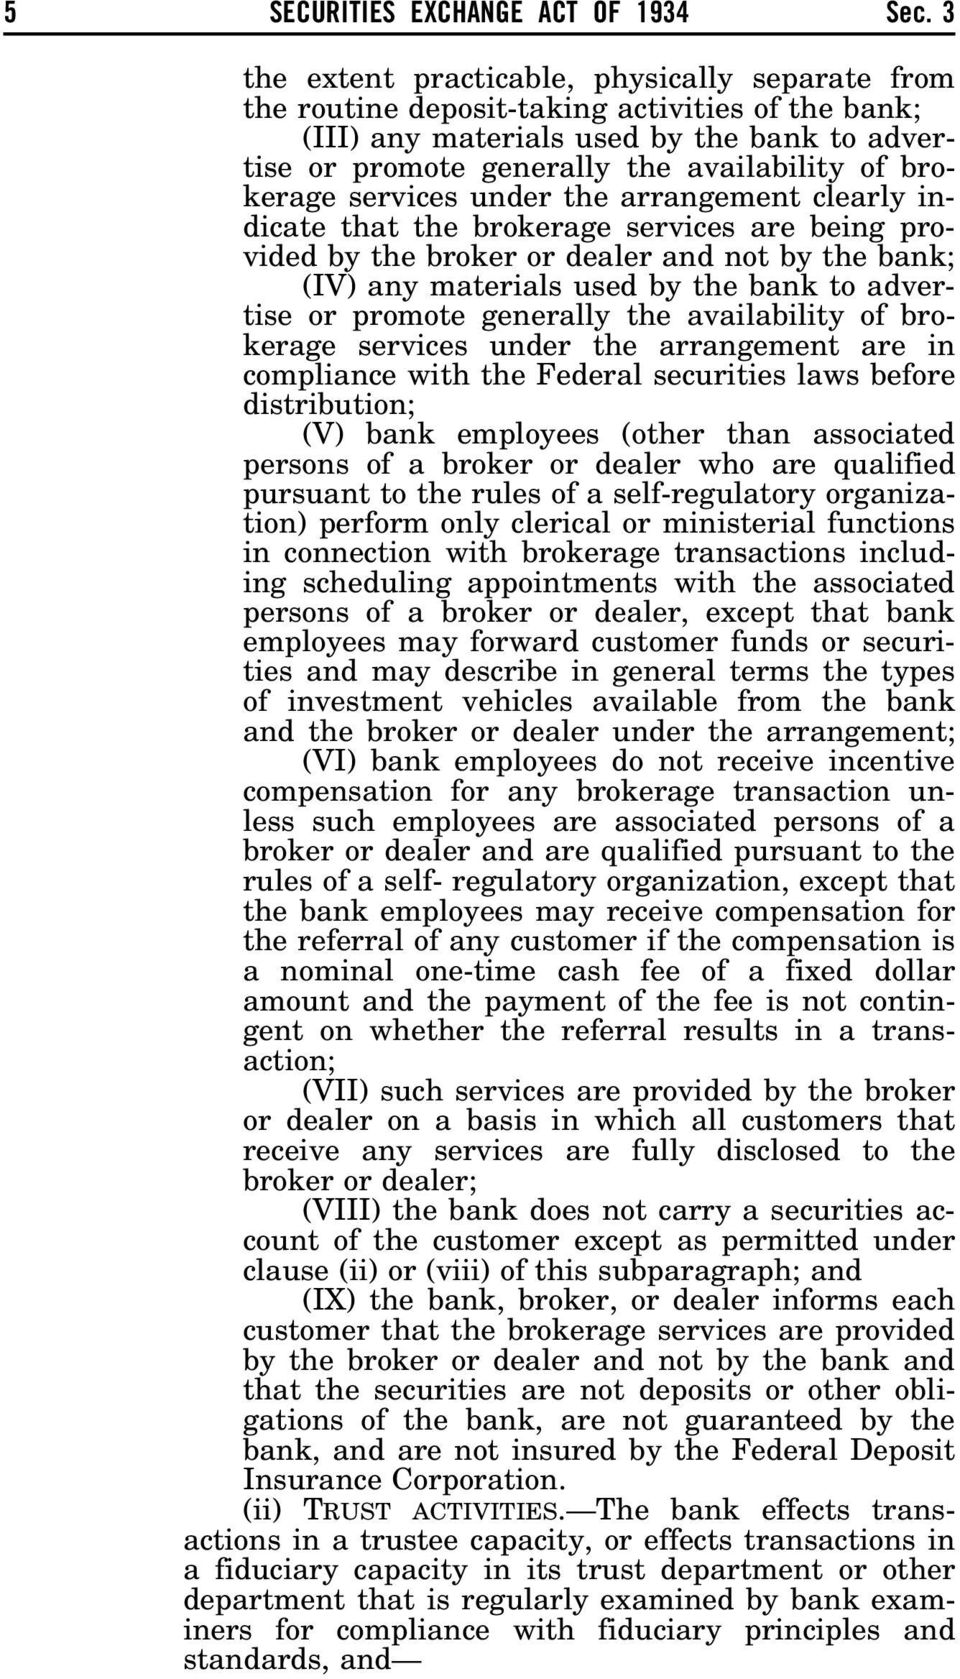 brokerage services under the arrangement clearly indicate that the brokerage services are being provided by the broker or dealer and not by the bank; (IV) any materials used by the bank to advertise